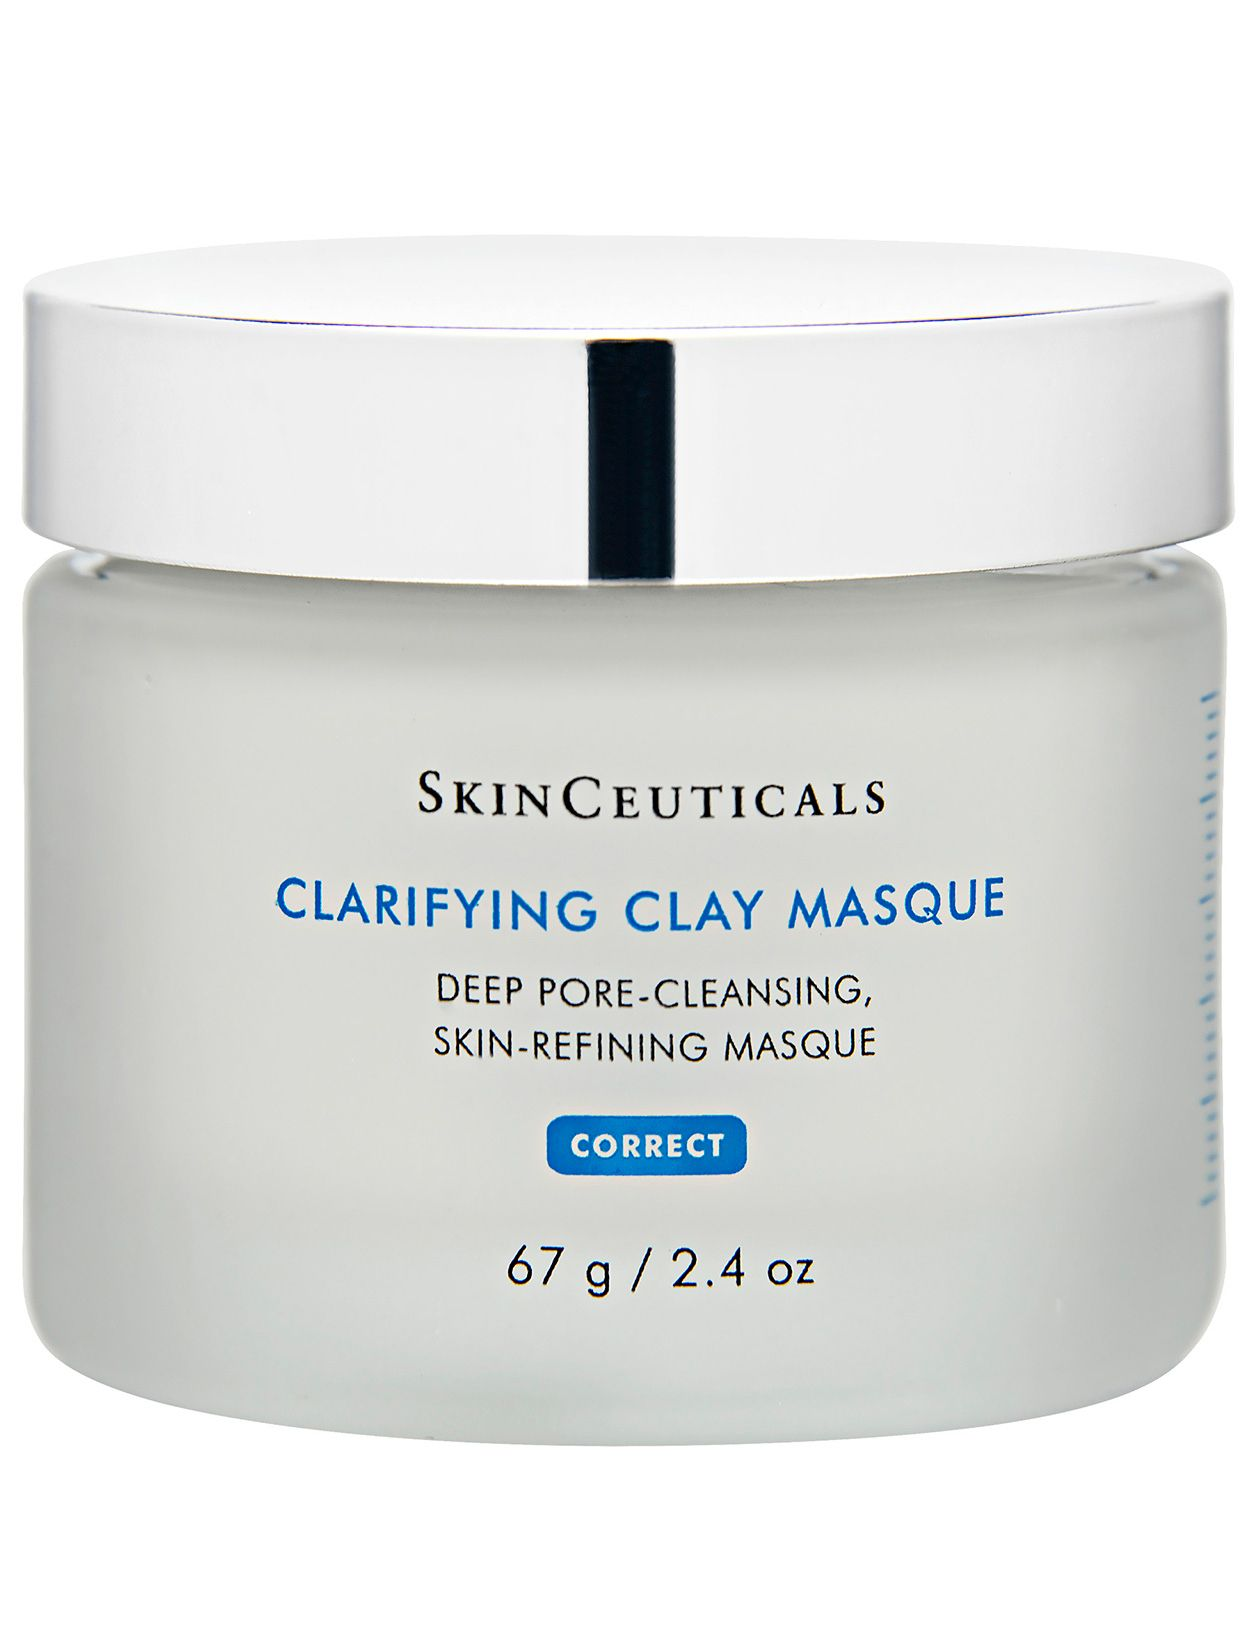 7 best face masks for acne 2019 - Reddit reviews the treatments that